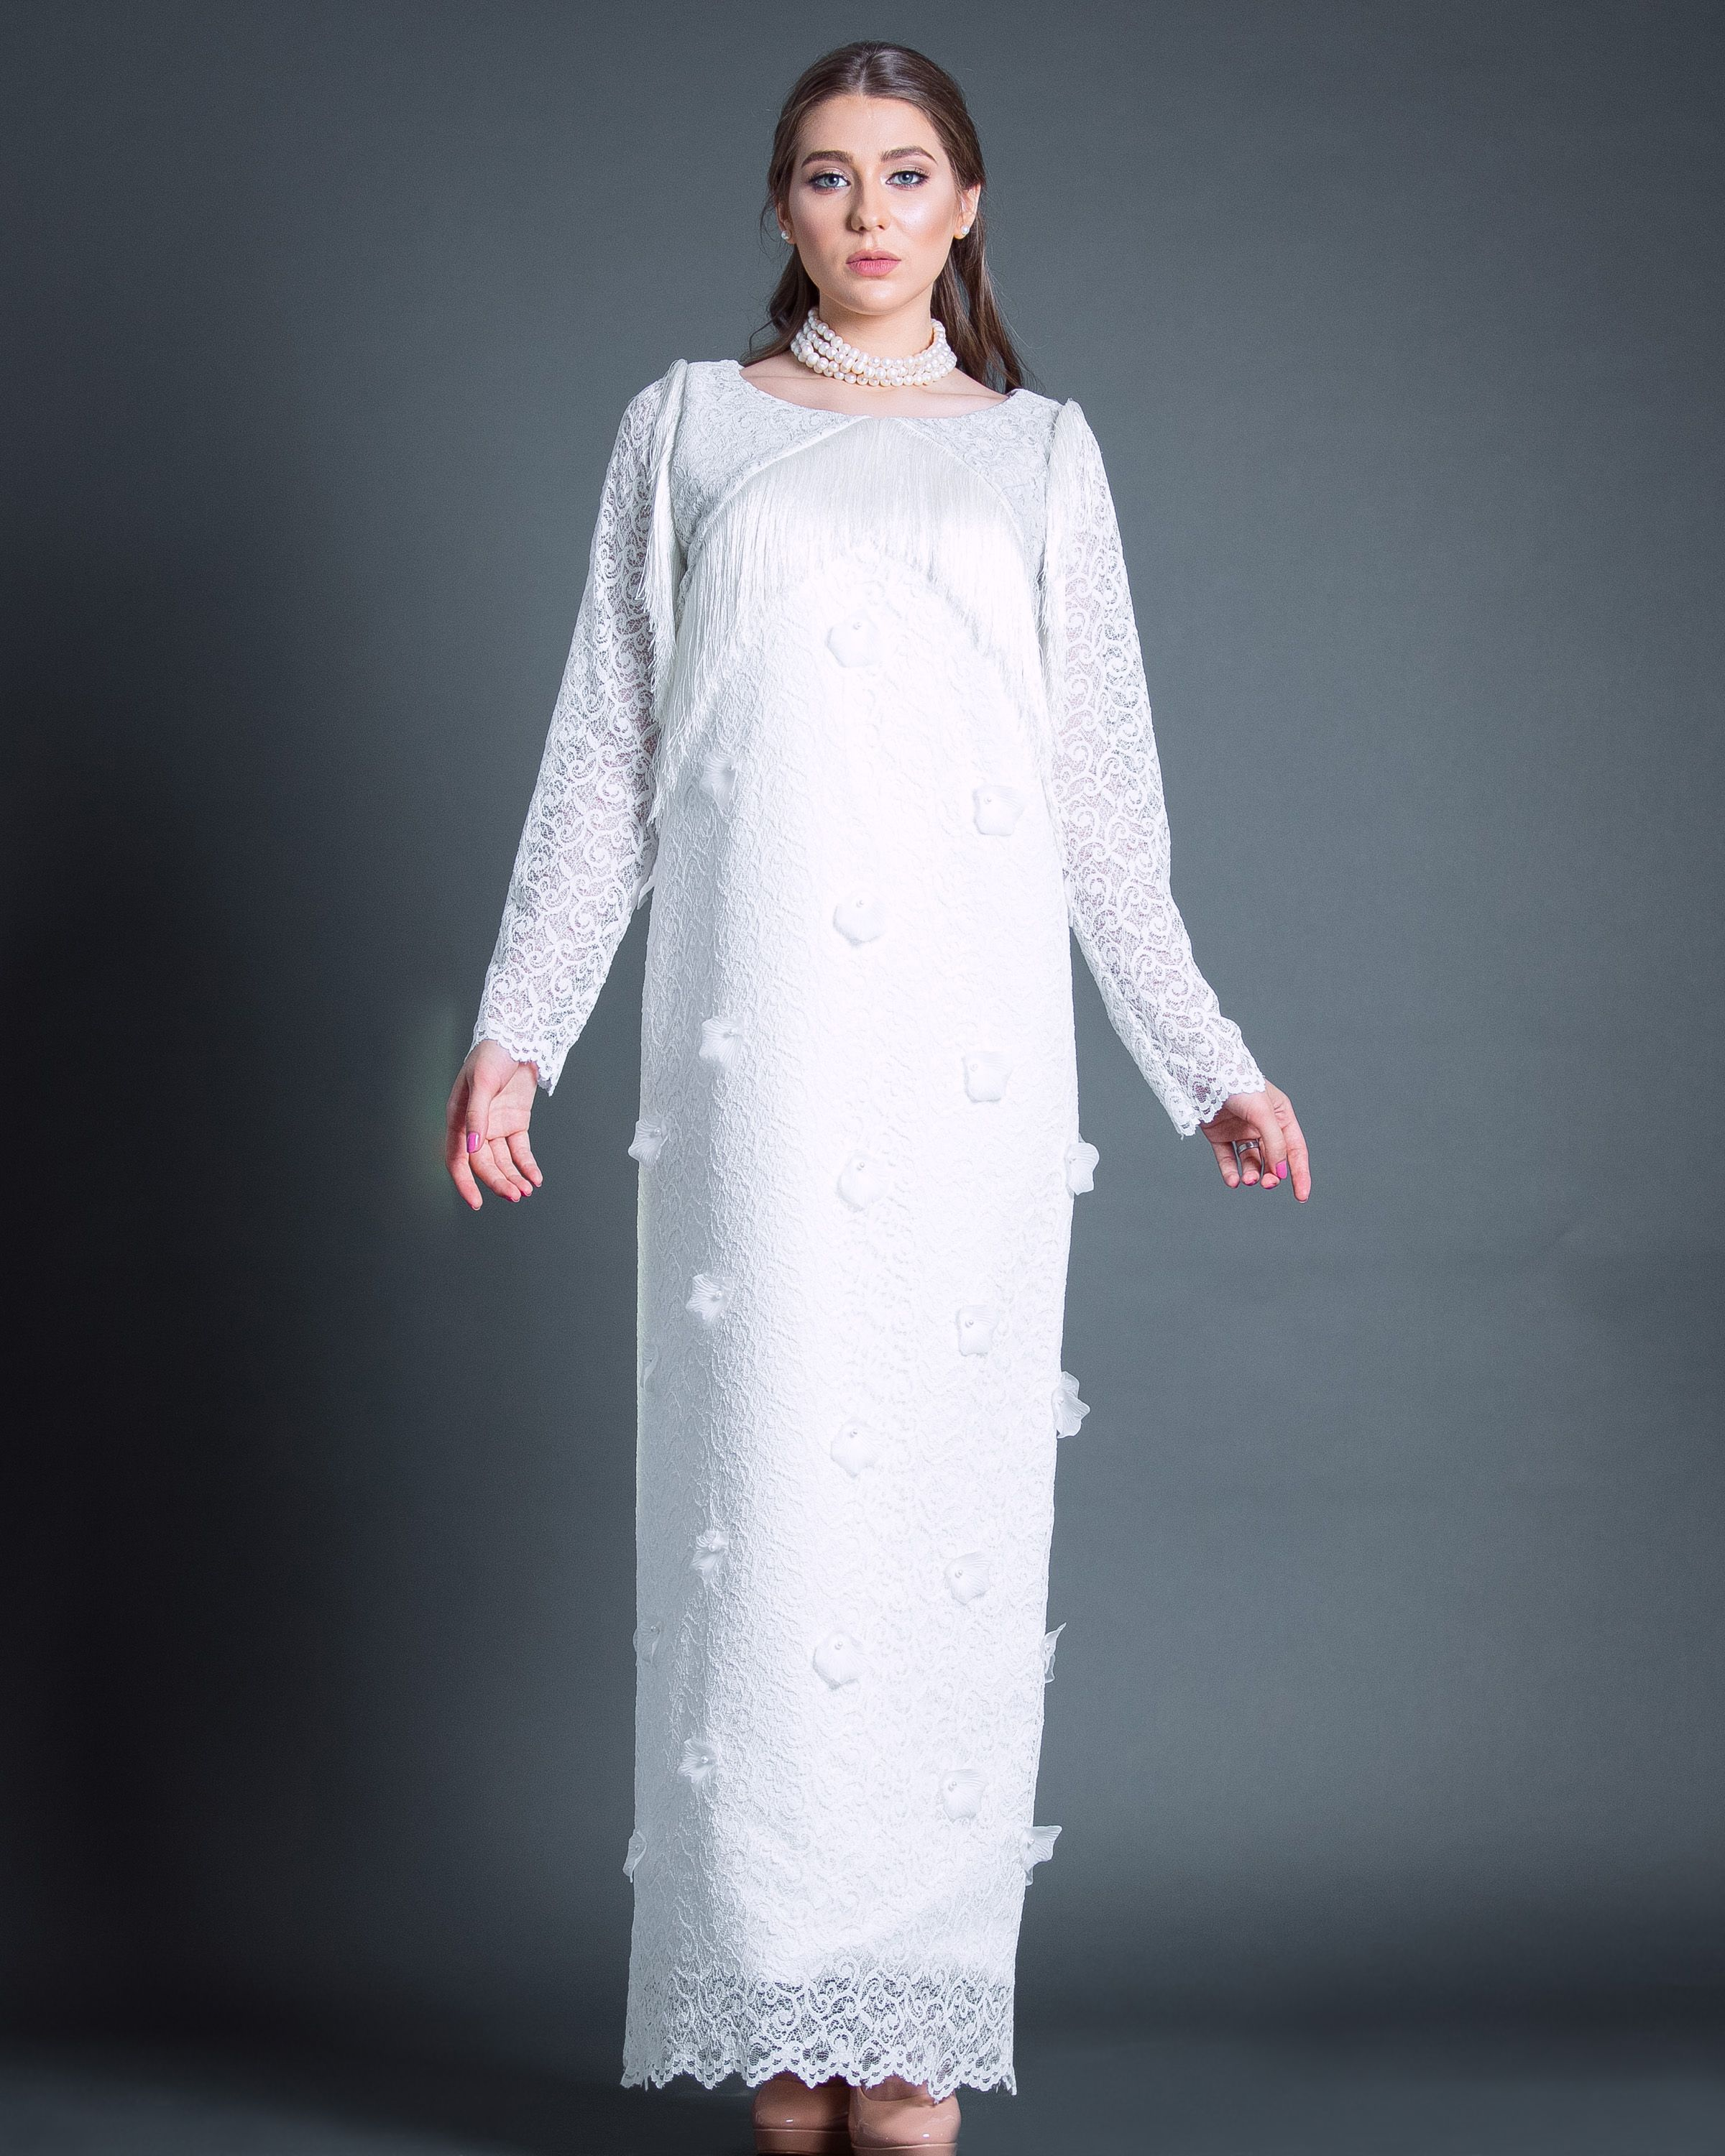 White Petals Gown by Shoug 🌬 | Sale Items | Pinterest | Long white ...